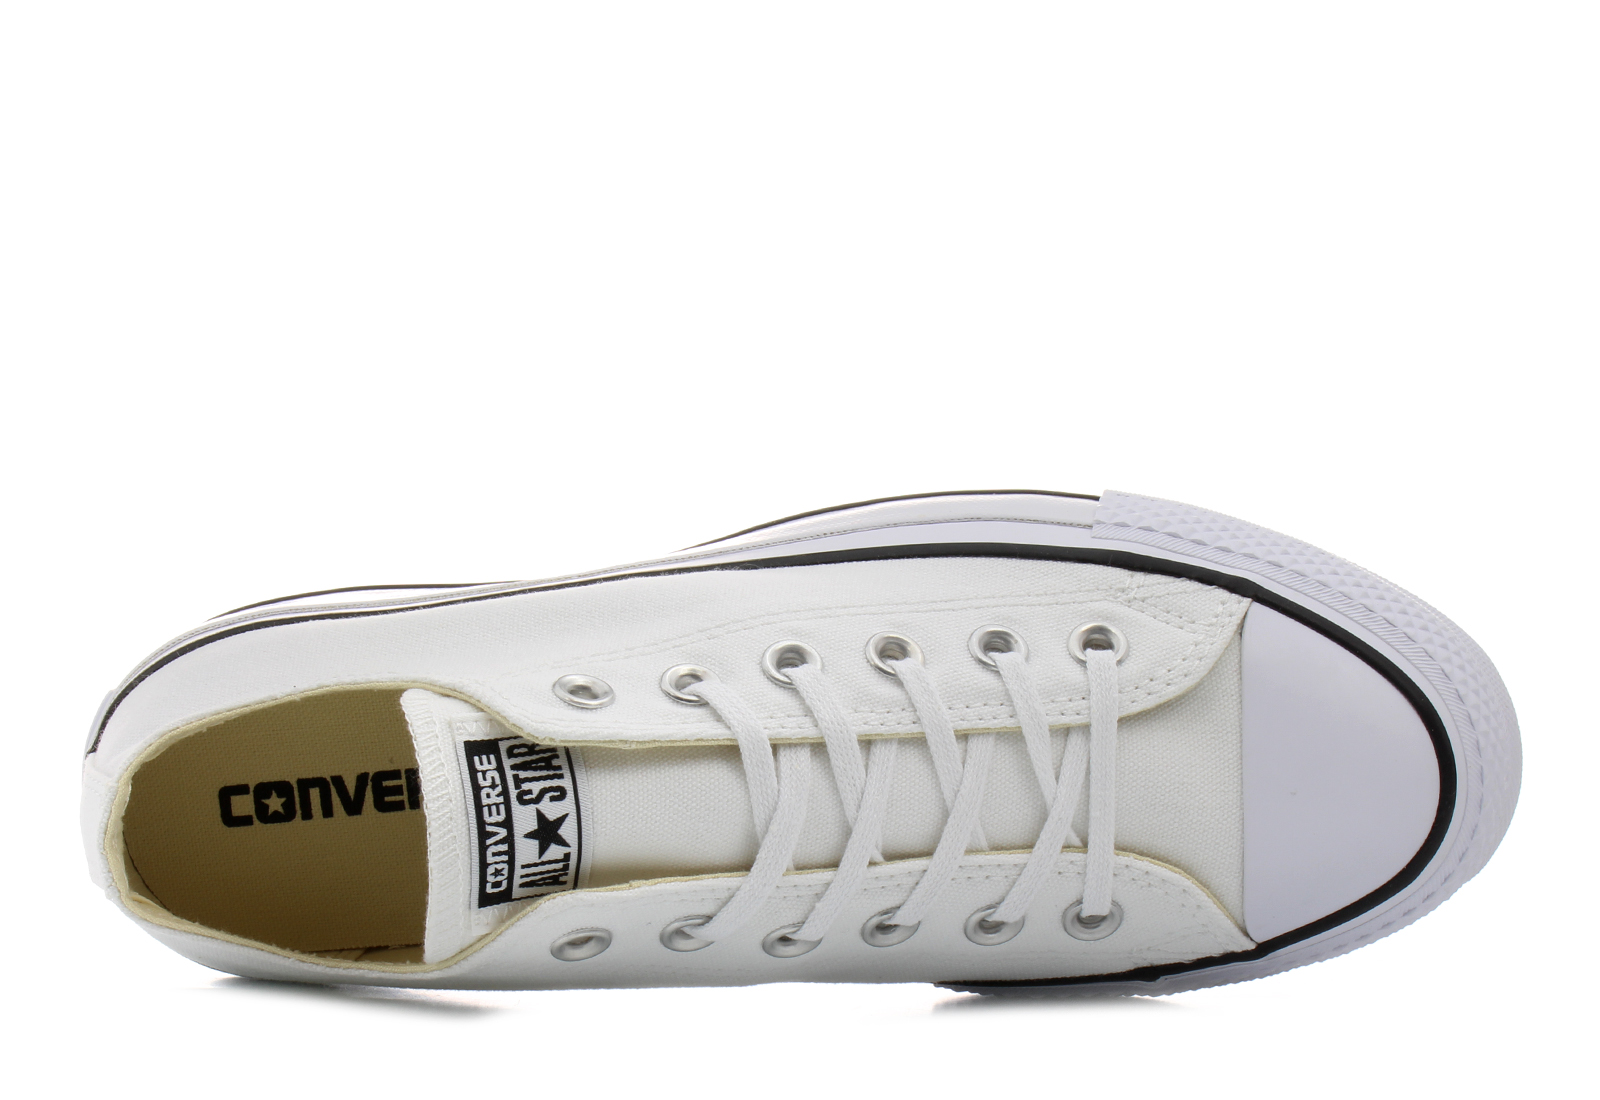 Converse Casual Bela Patike Chuck Taylor All Star Lift Office Shoes Srbija